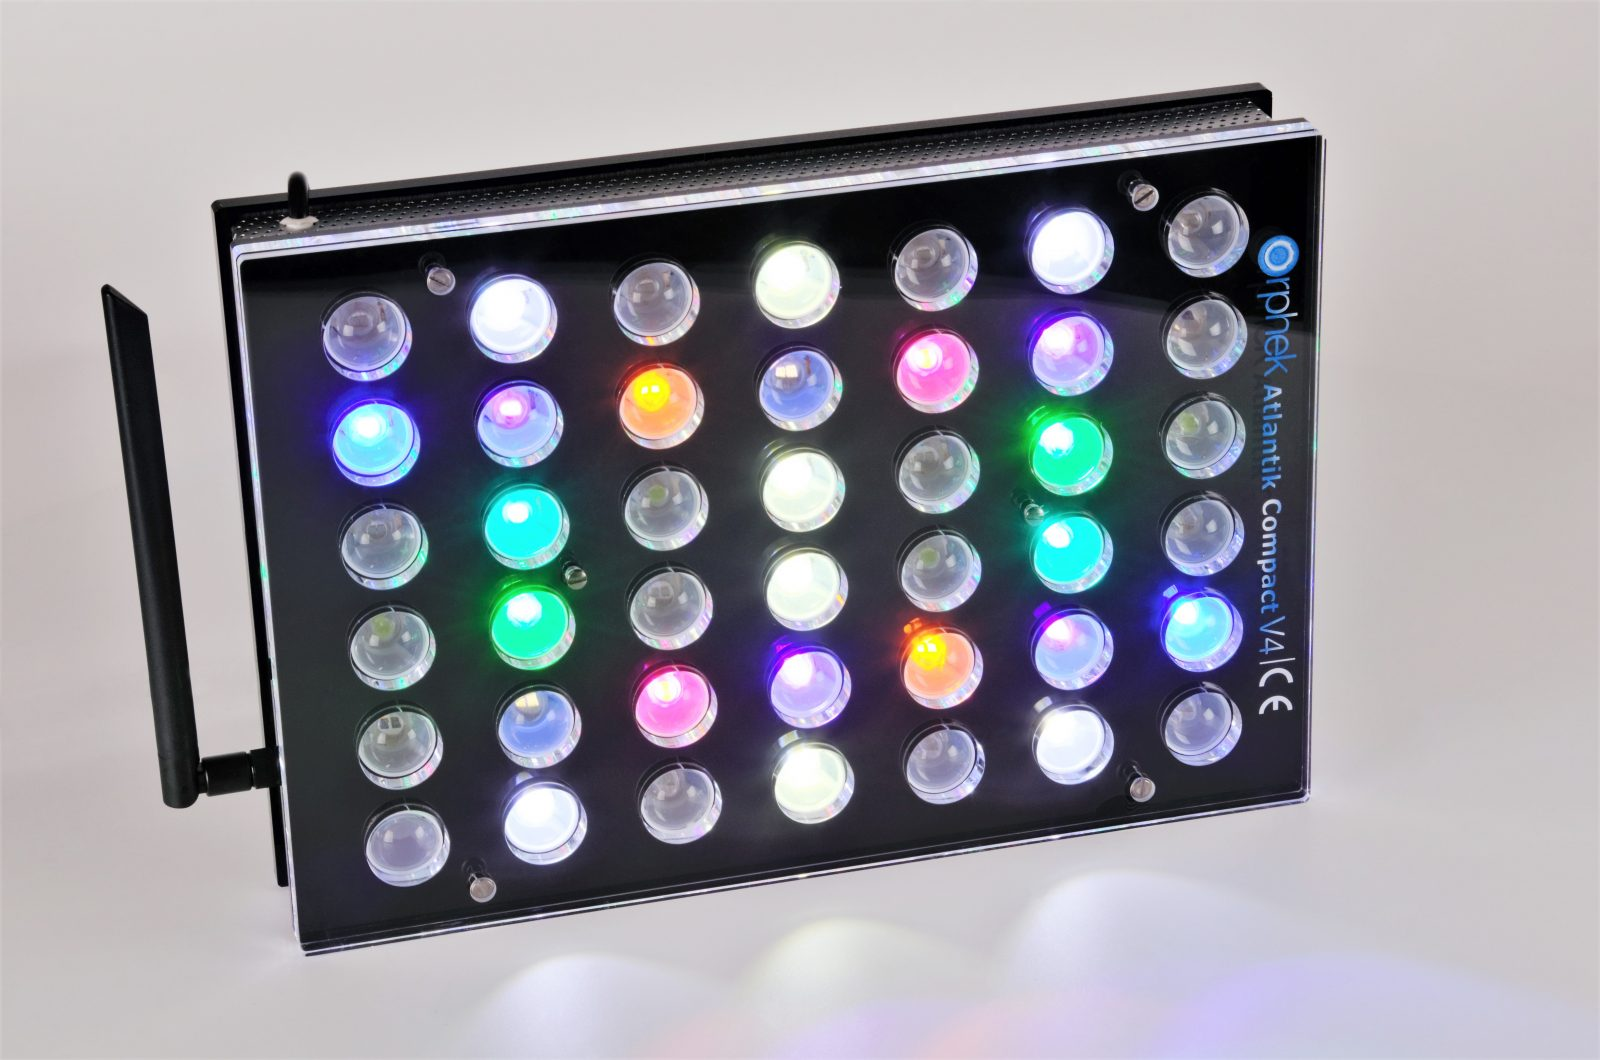 Orphek-Aquarium-LED-Lighting-Atlantik -Compact-V4-light -on -channel 1+3+4